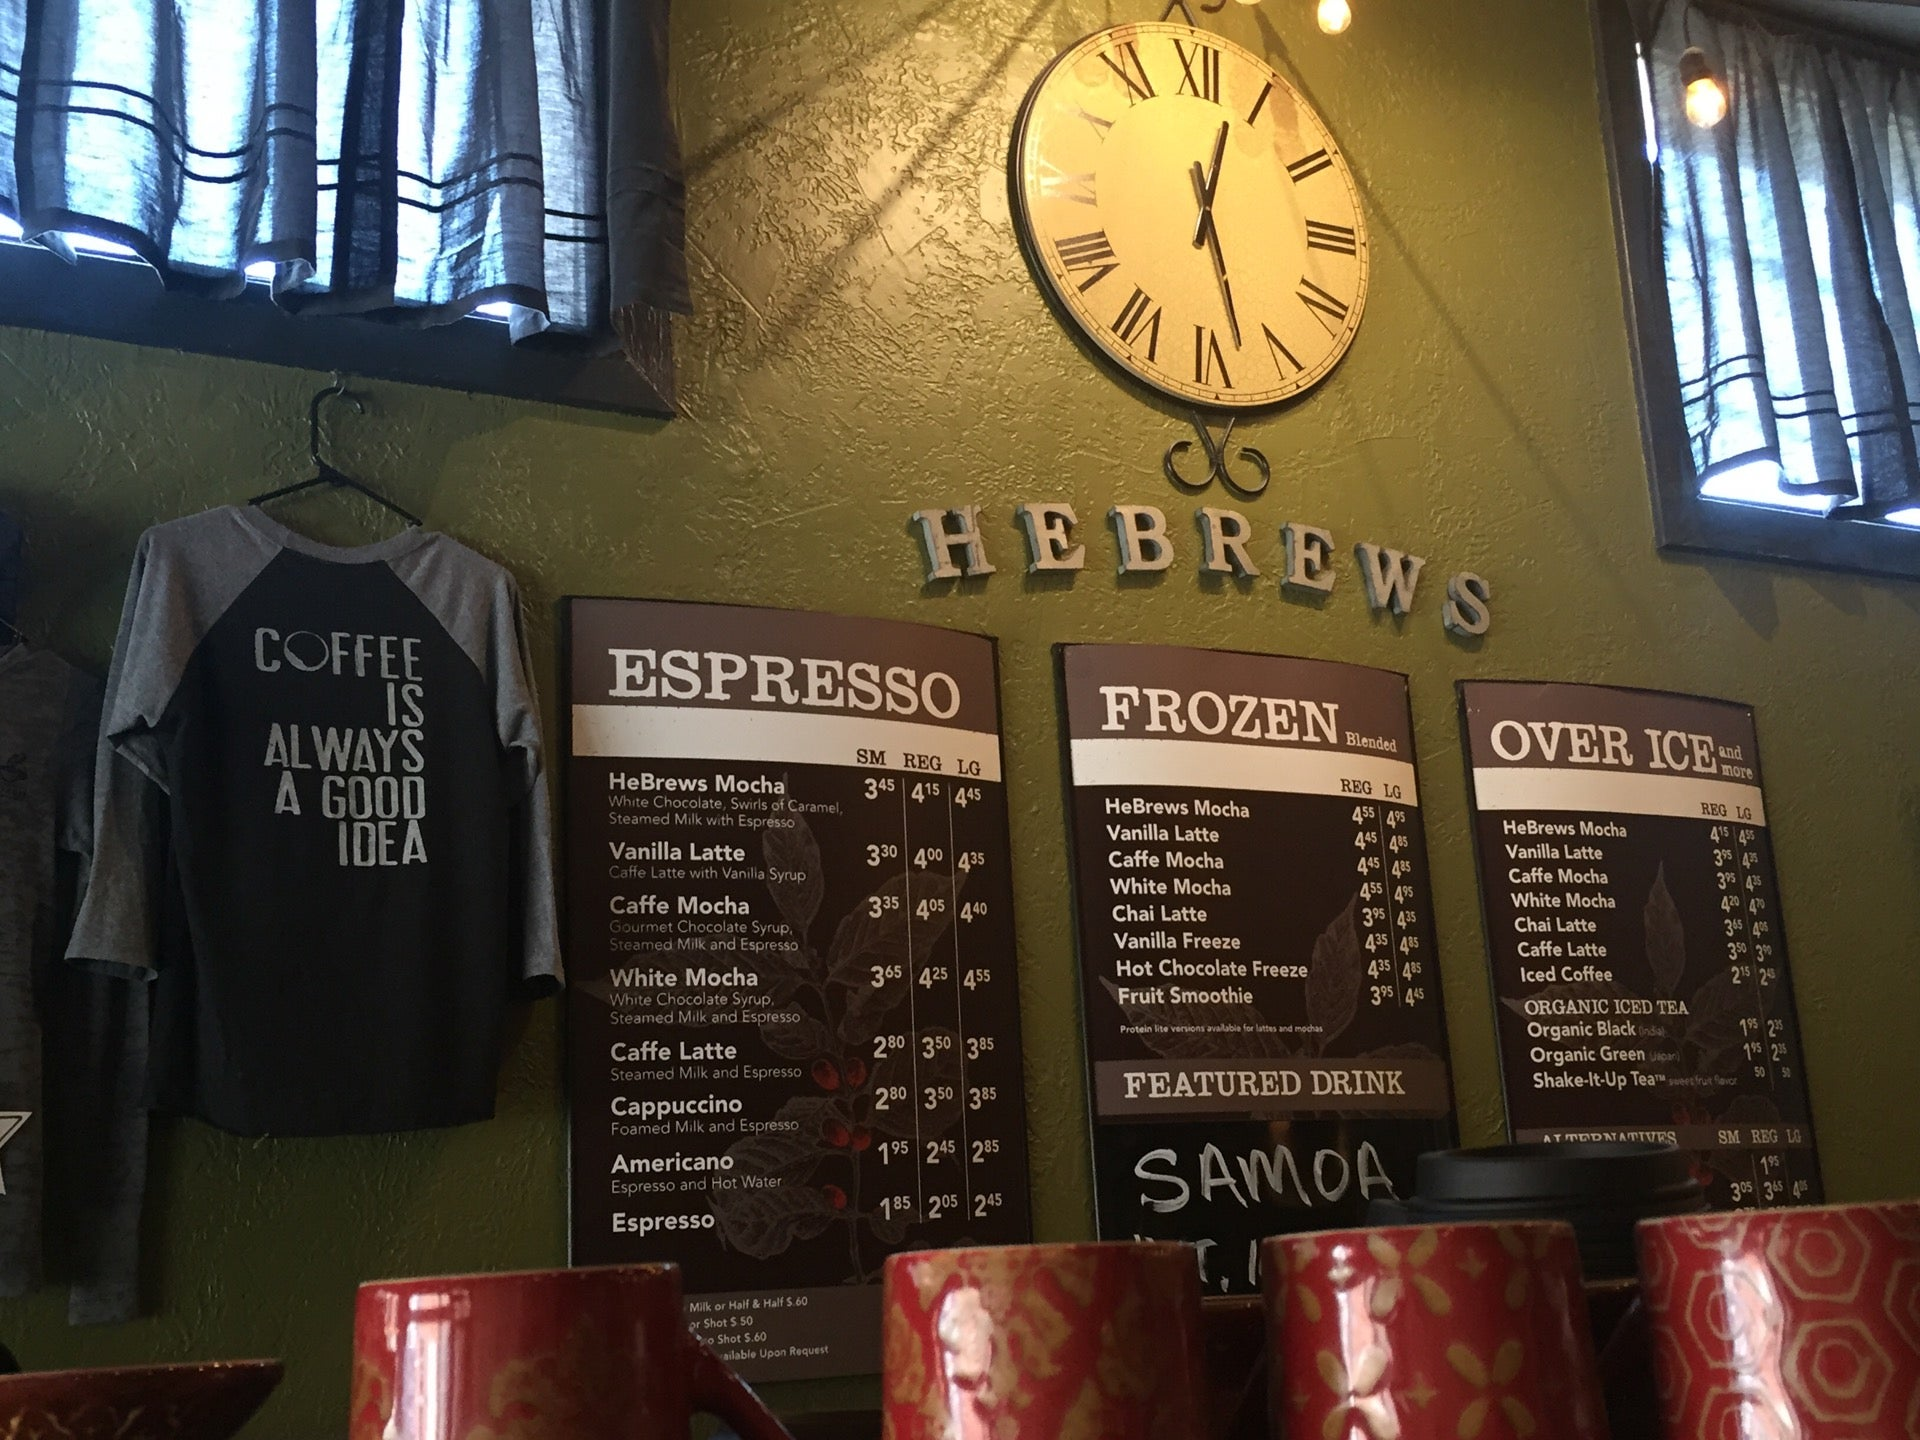 Hebrew's Coffee Company,